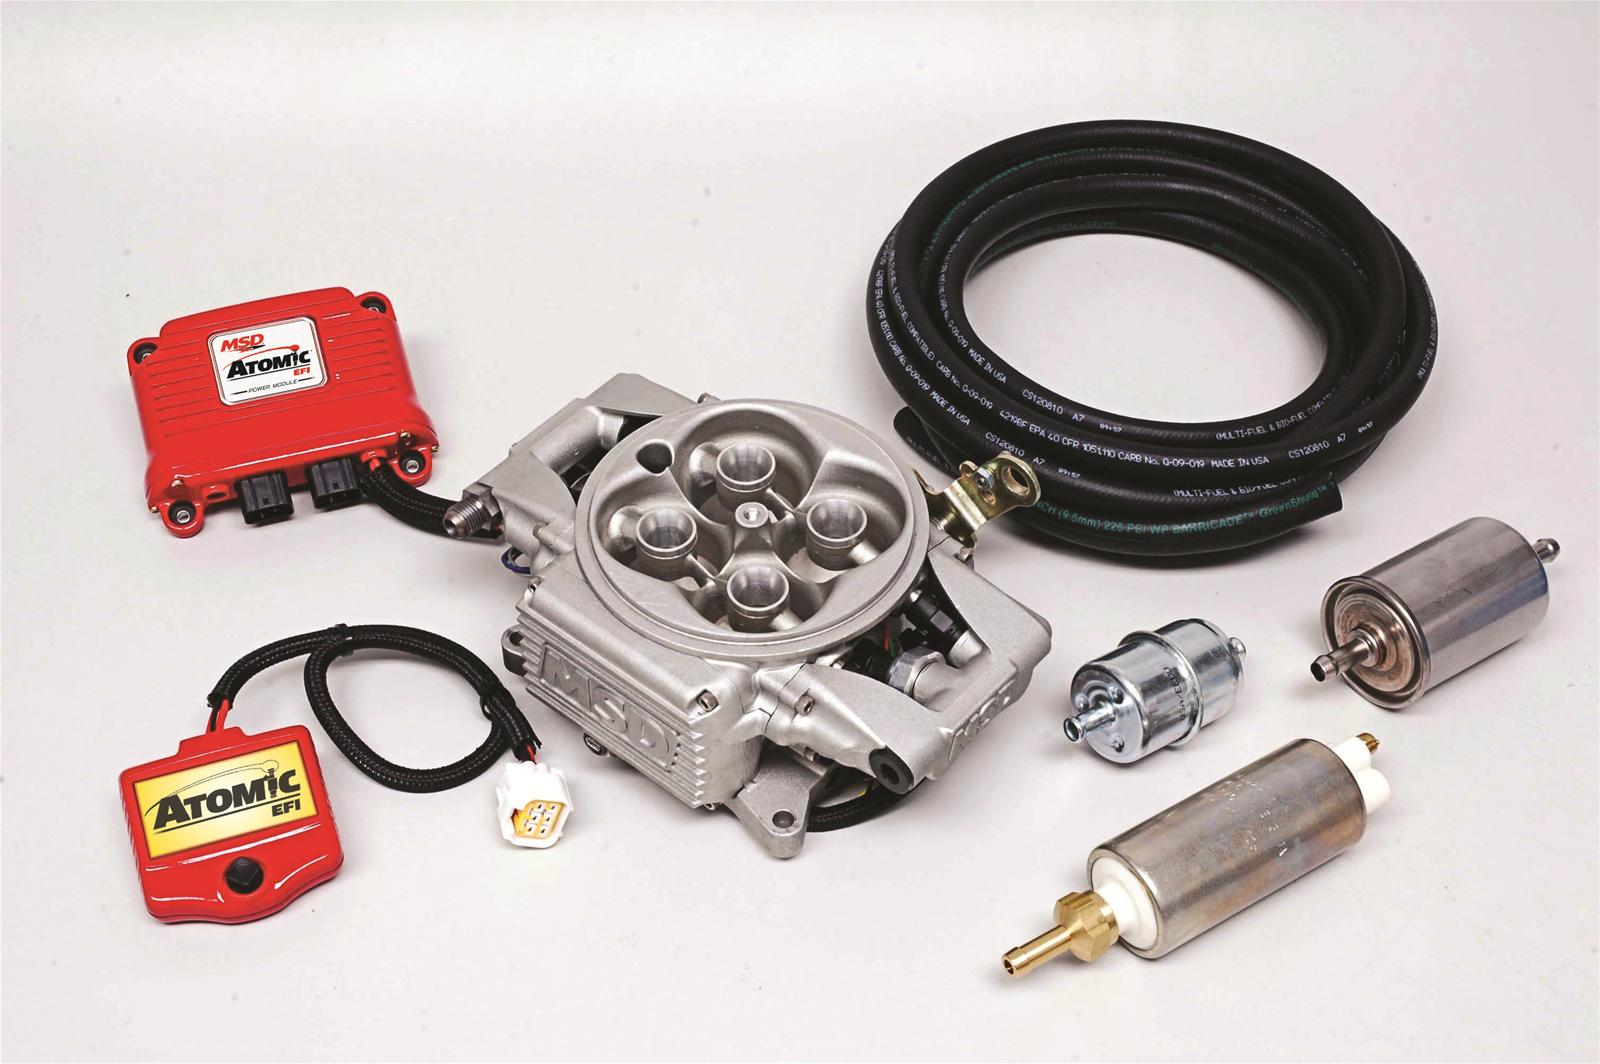 msd 2900 atomic efi fuel injection kit w  electric fuel